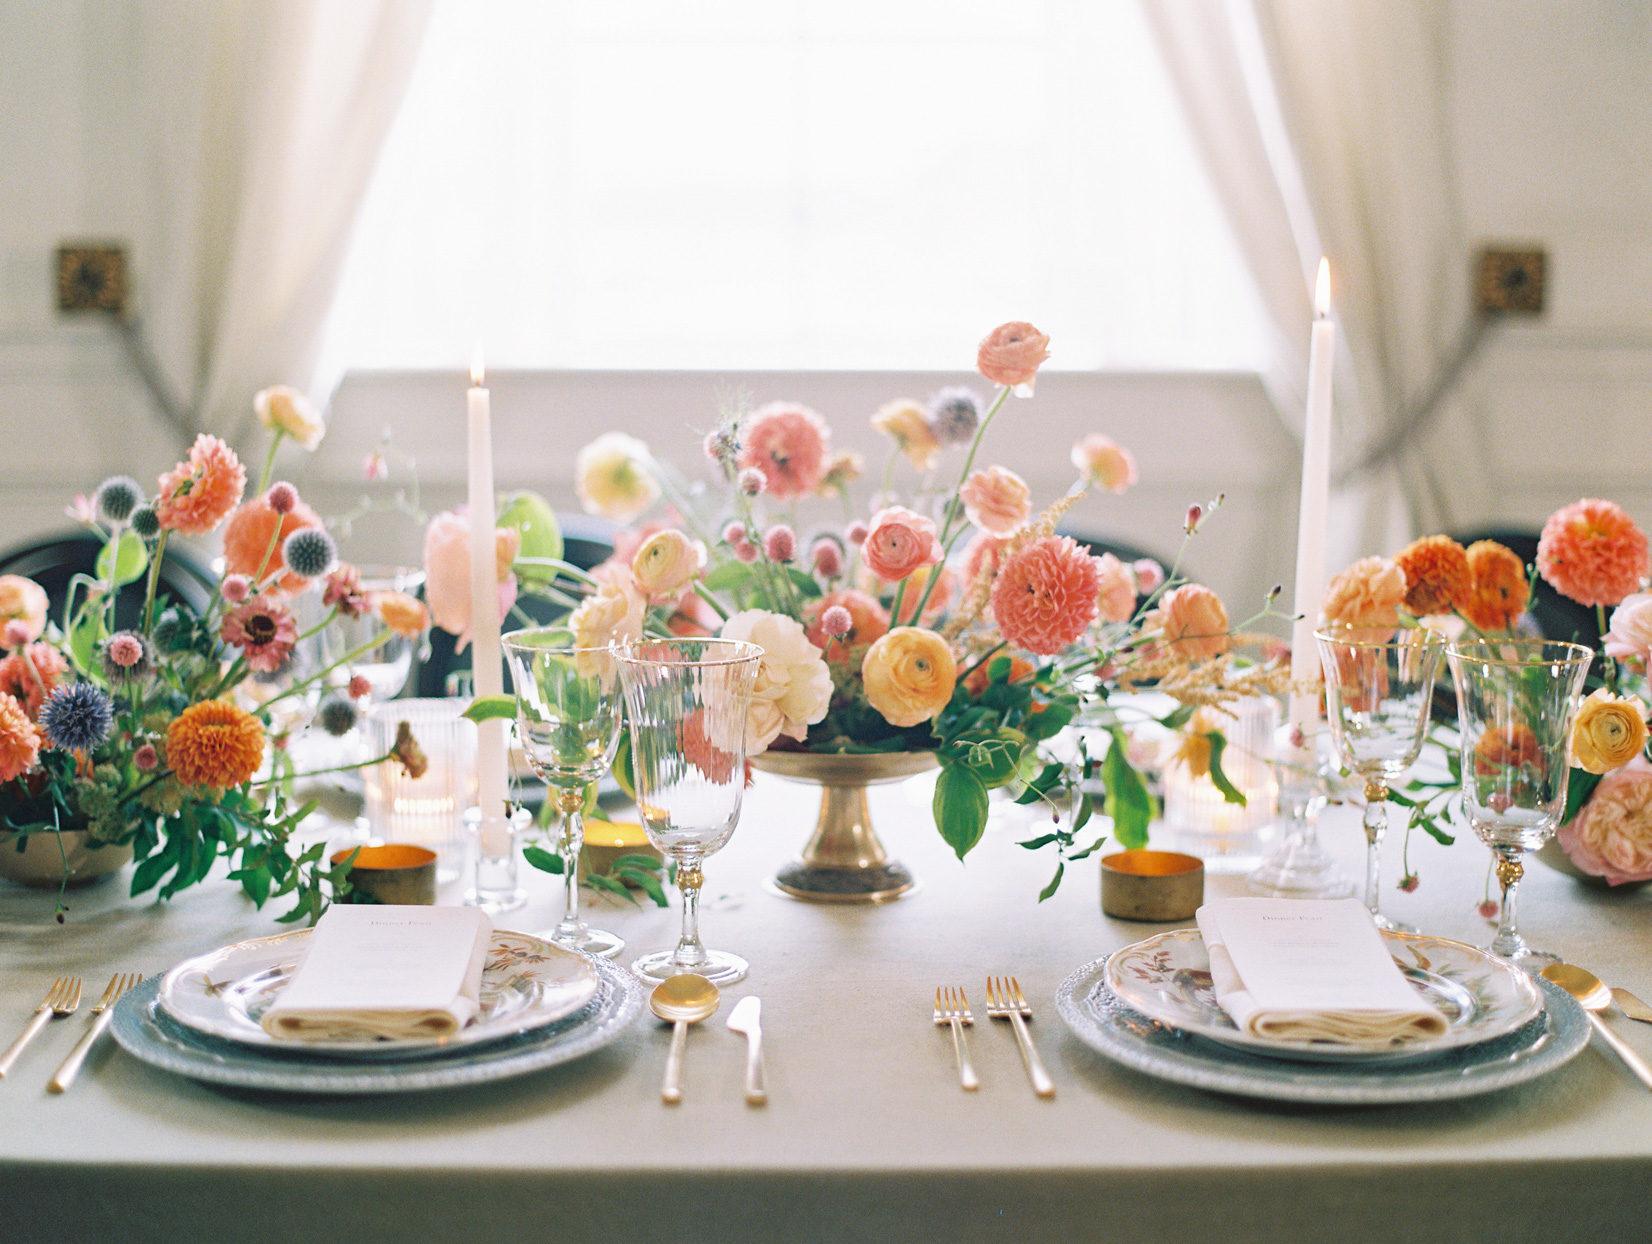 reception table top details with candles and fun floral arrangements